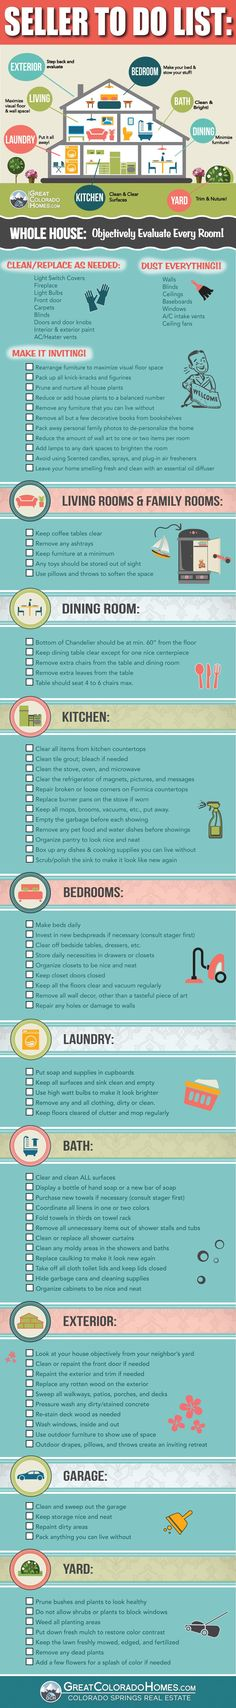 Home seller to do list. Very helpful resource to prepare to sell your home or real estate.